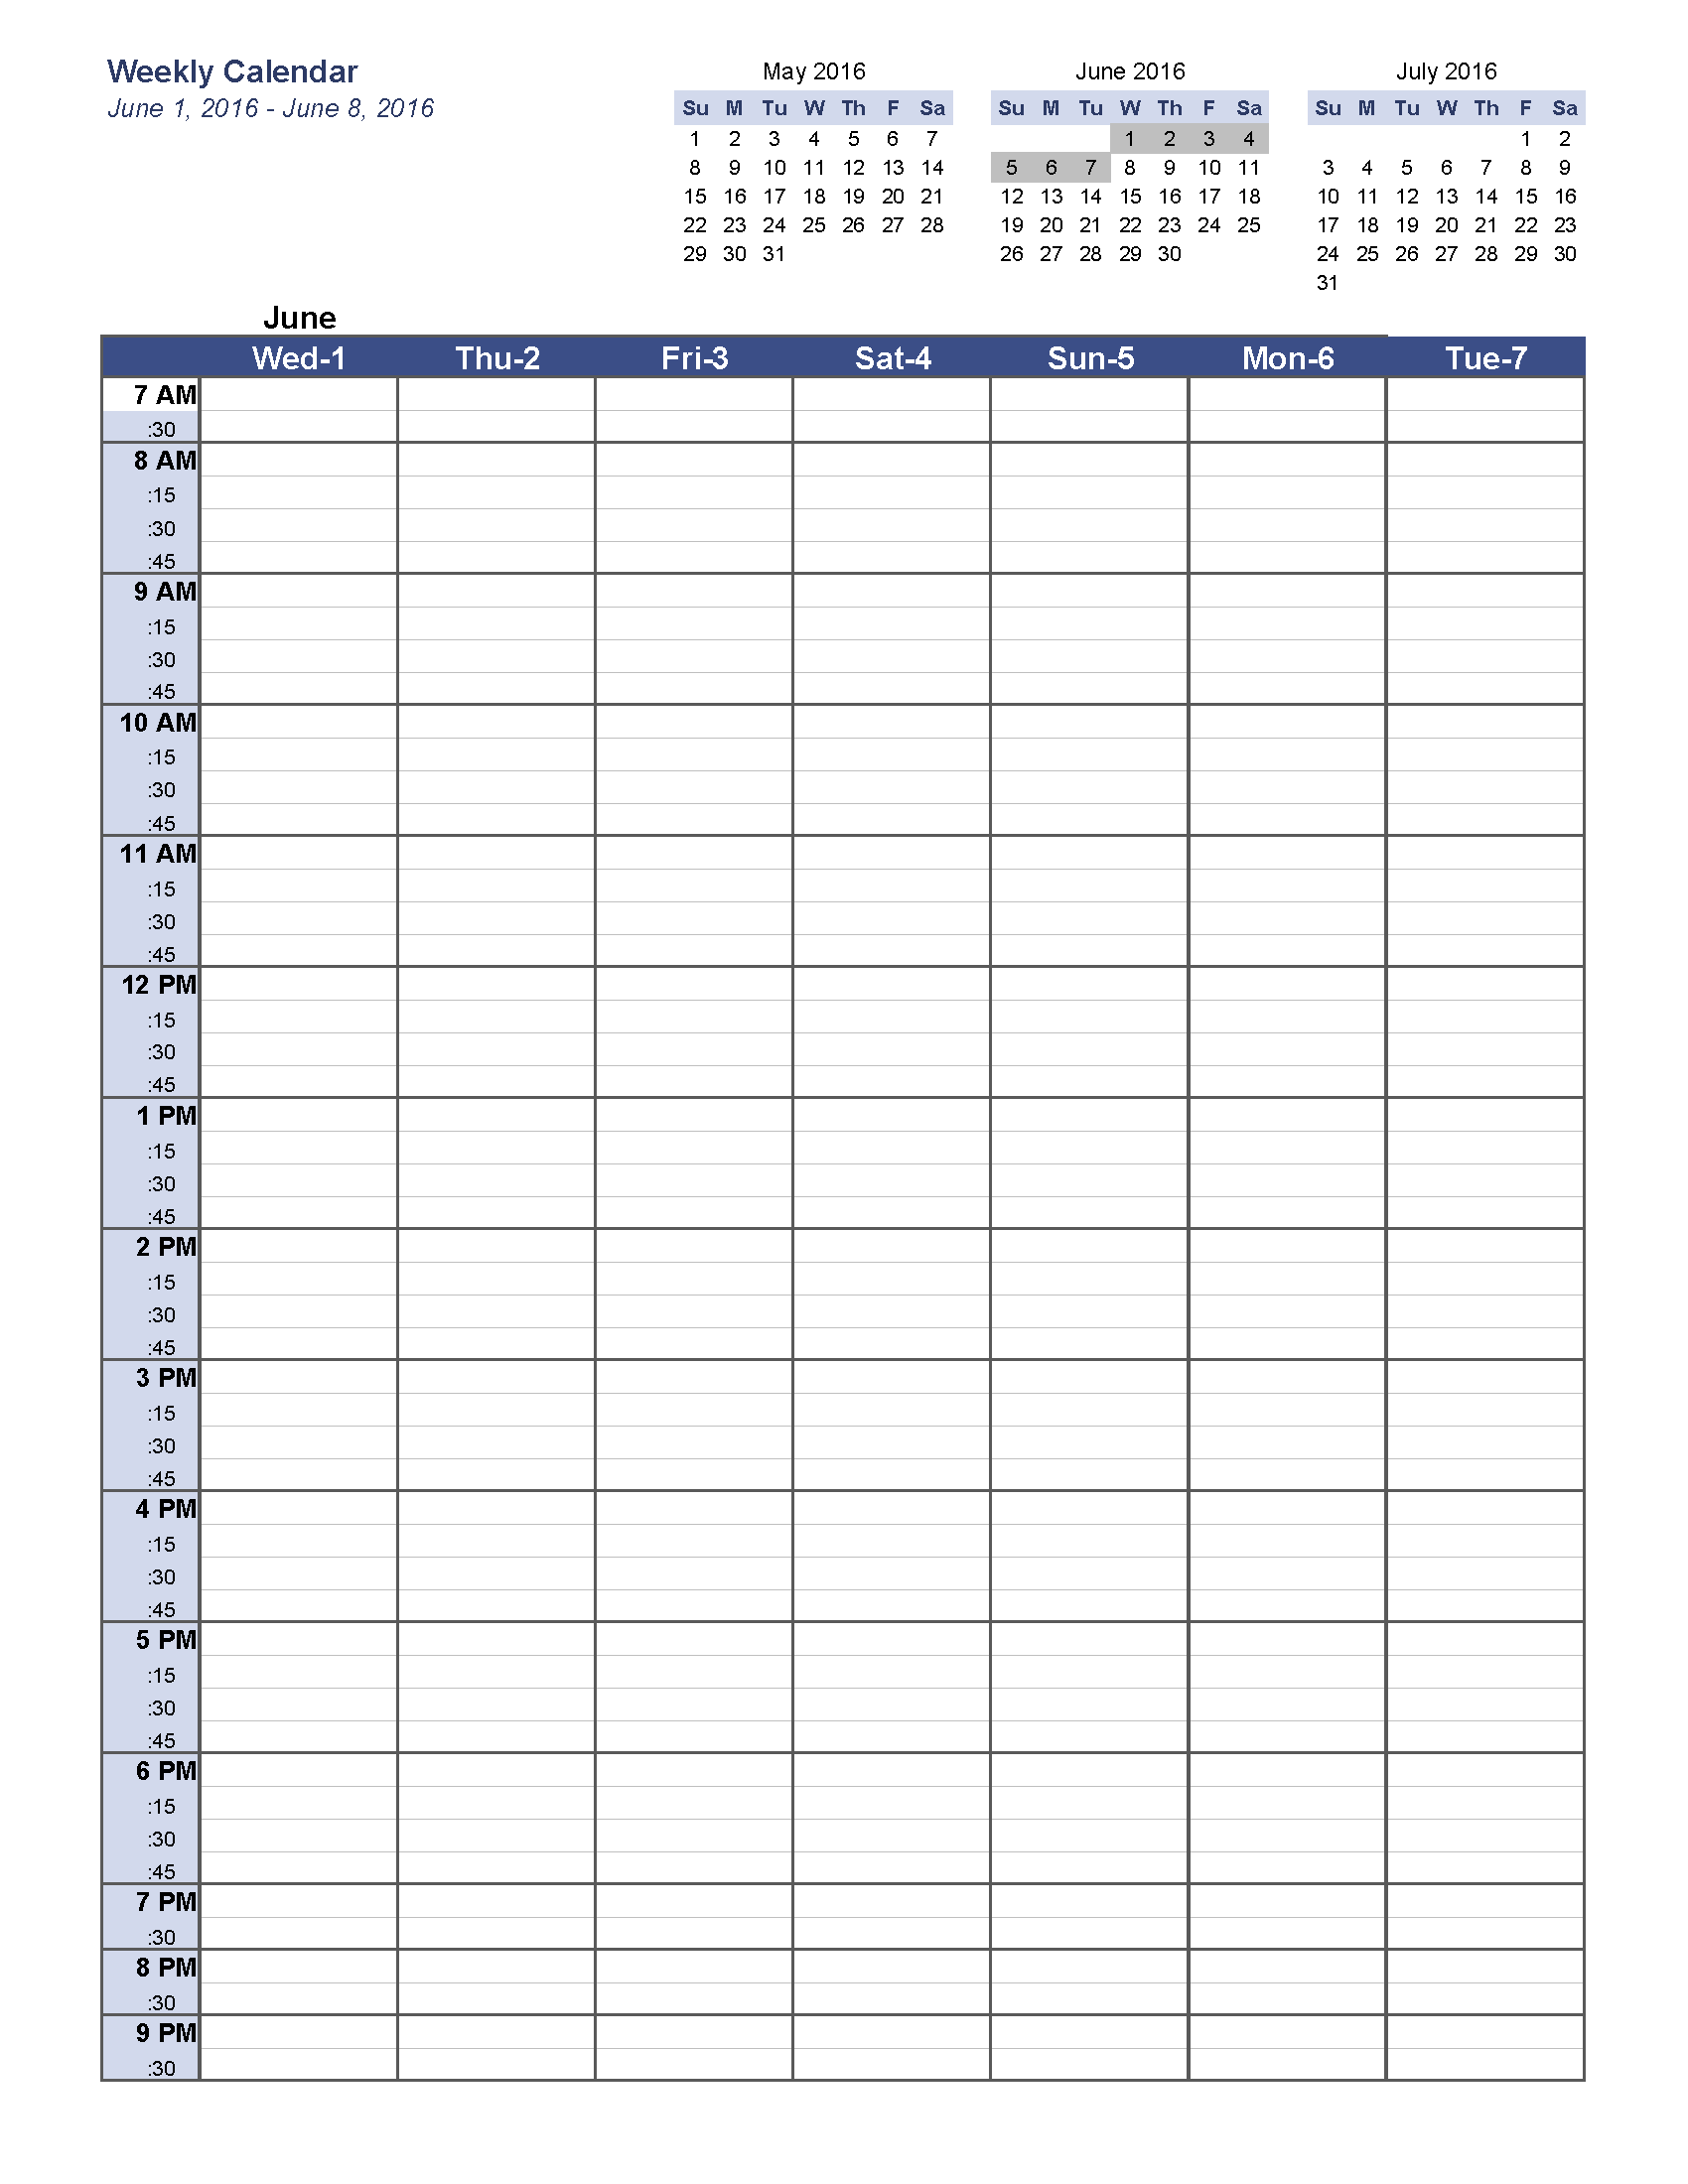 Calendar Printables Weekly School : June weekly calendar blank printable templates